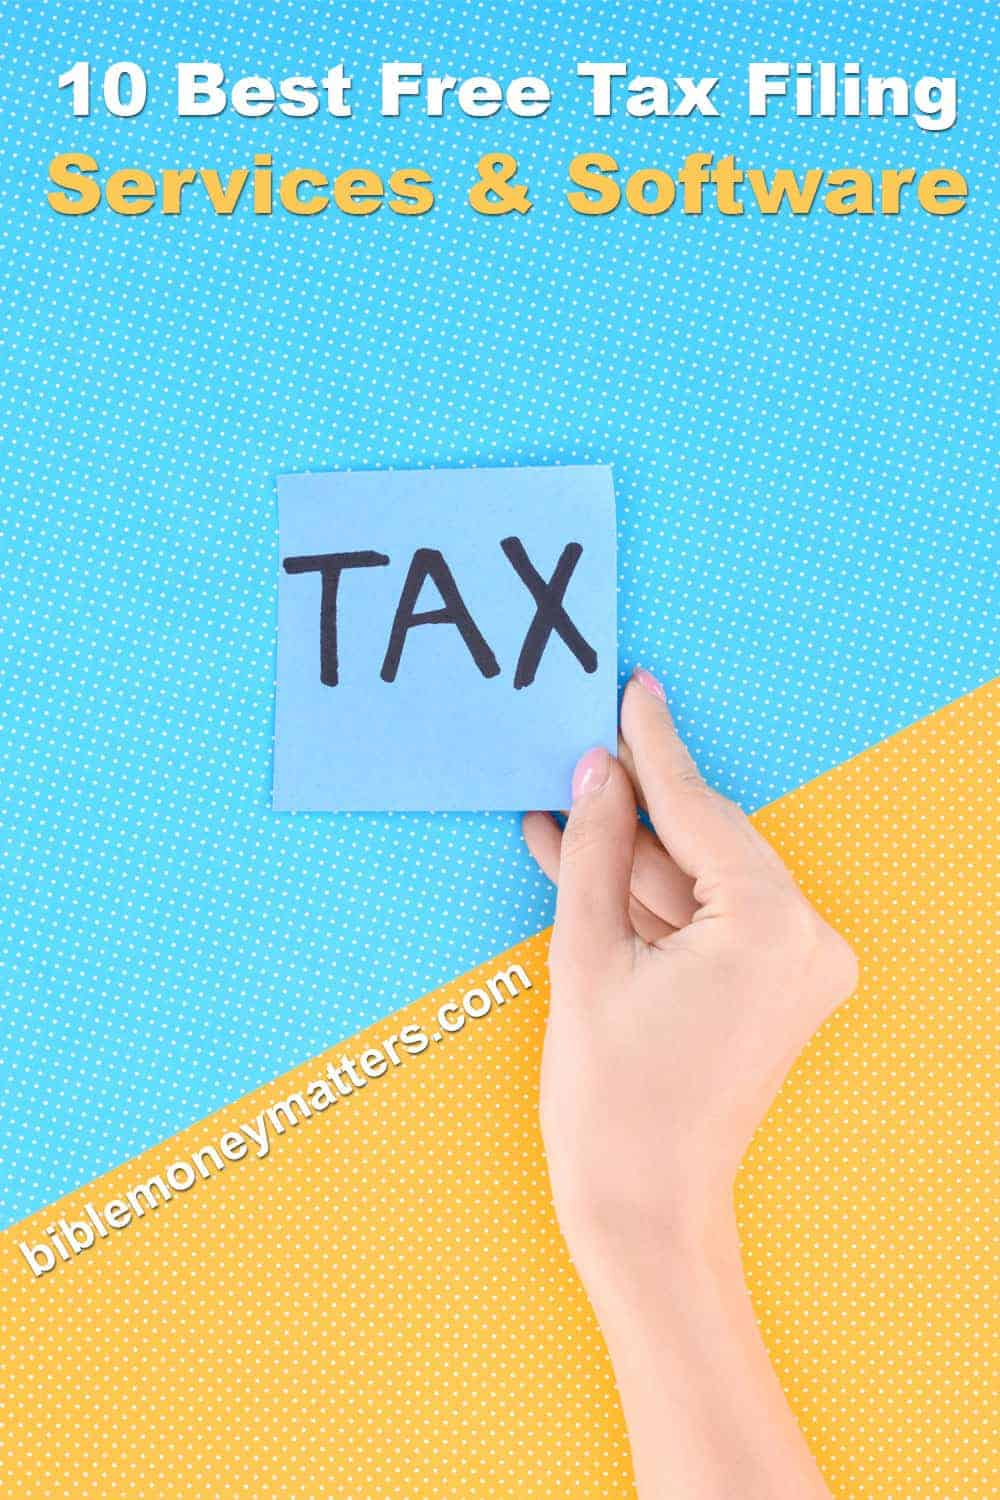 Free Tax Filing Services